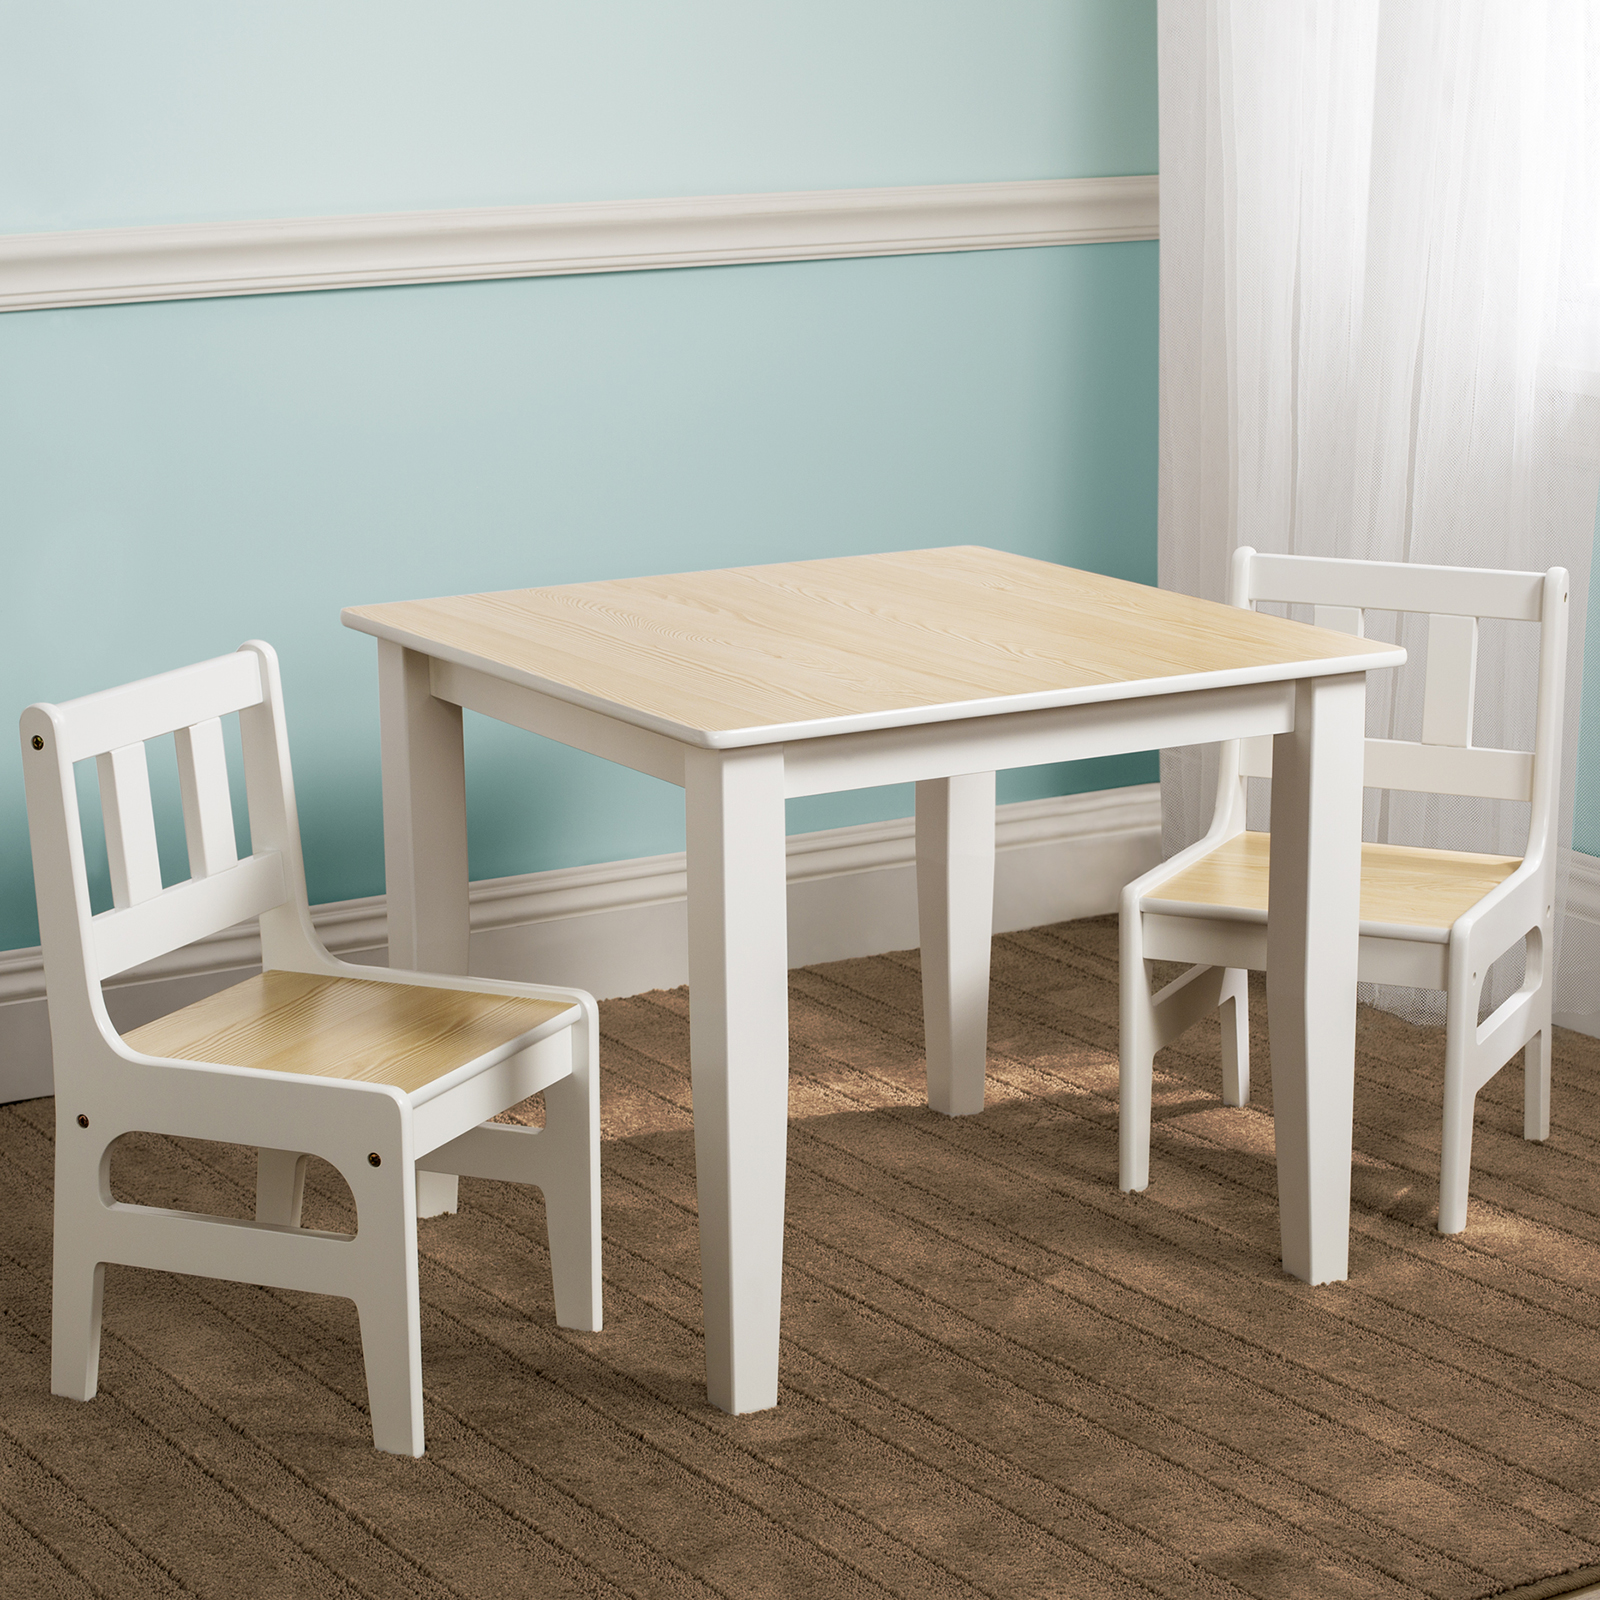 Kids Wooden Table And Chairs New Delta Children Natural Kids Wooden Table And Chairs Set